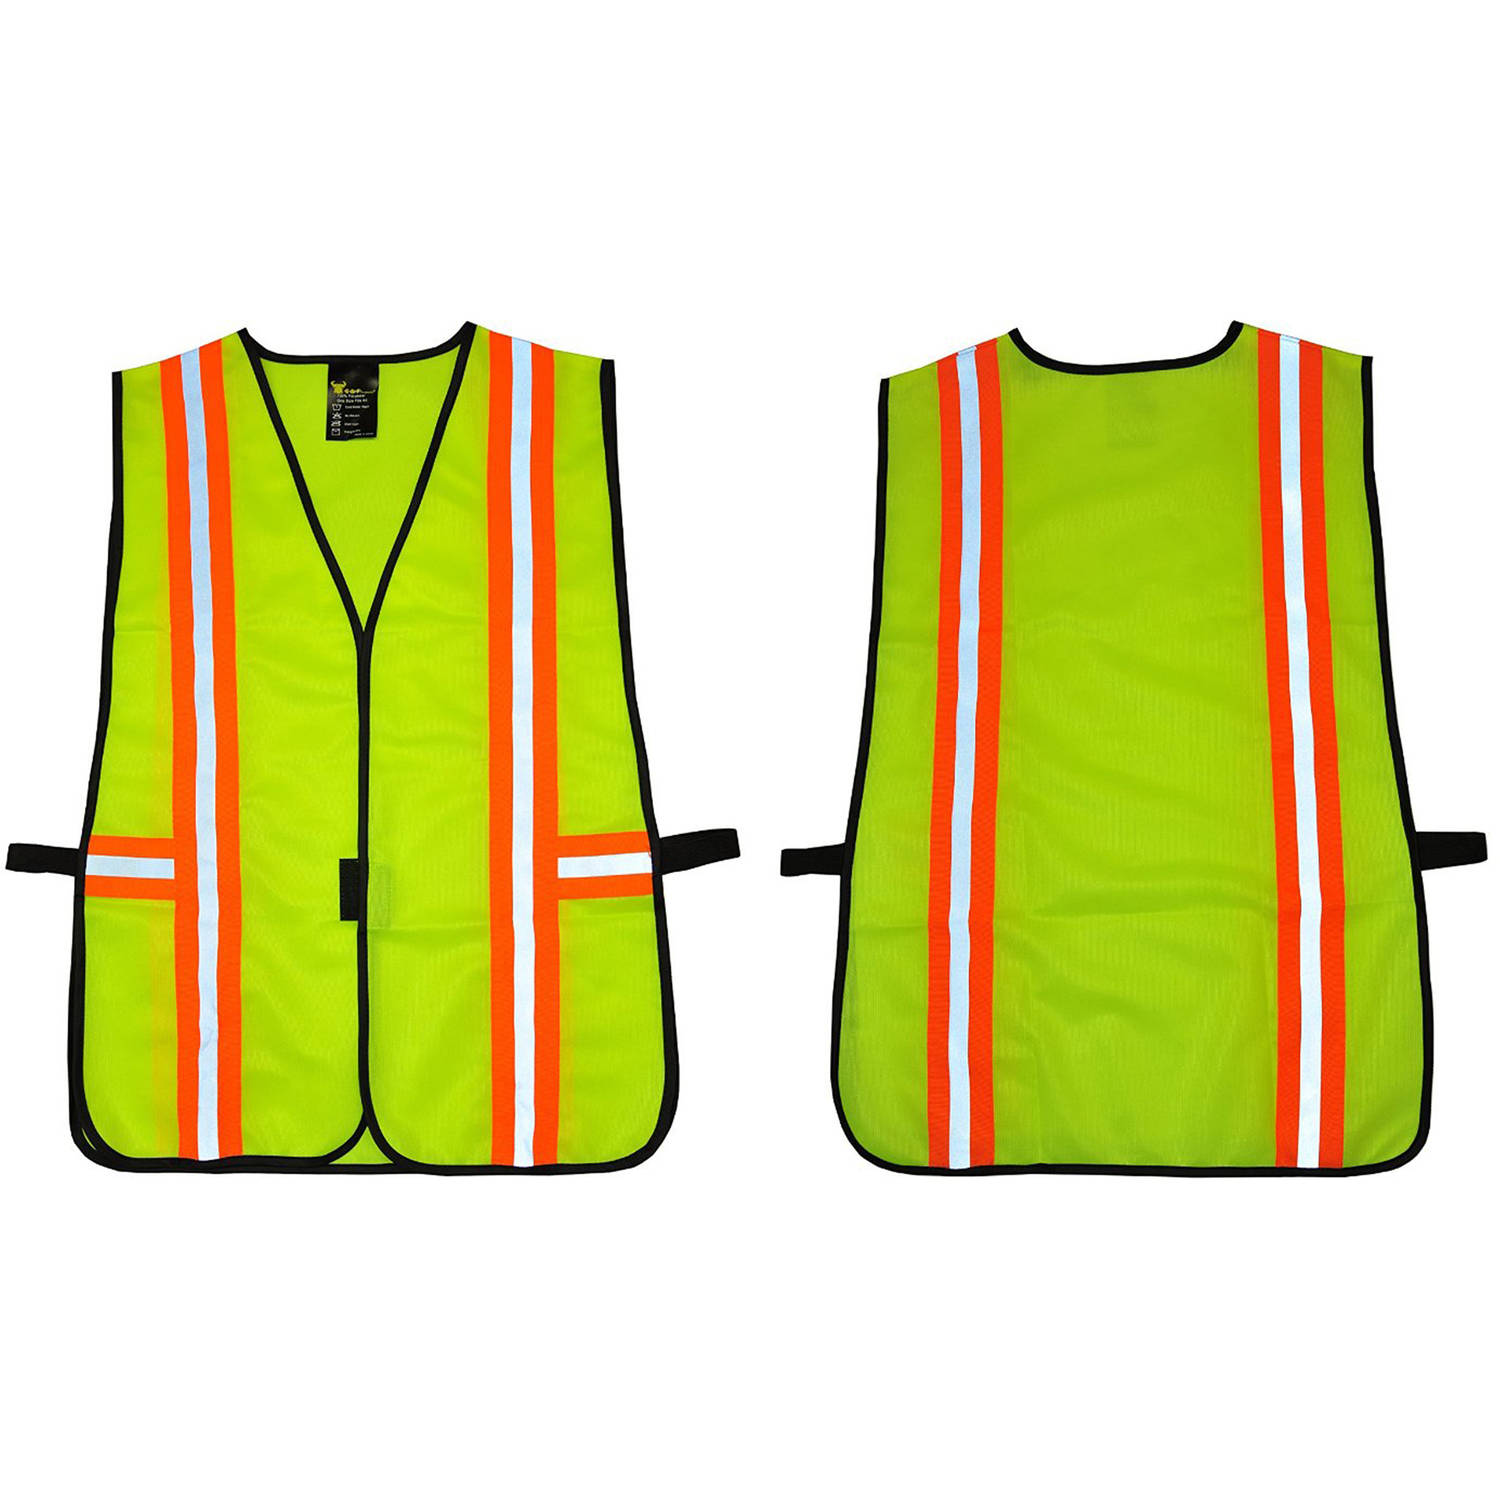 G & F Industrial Safety Vest with Reflective Strips, Neon Lime Green